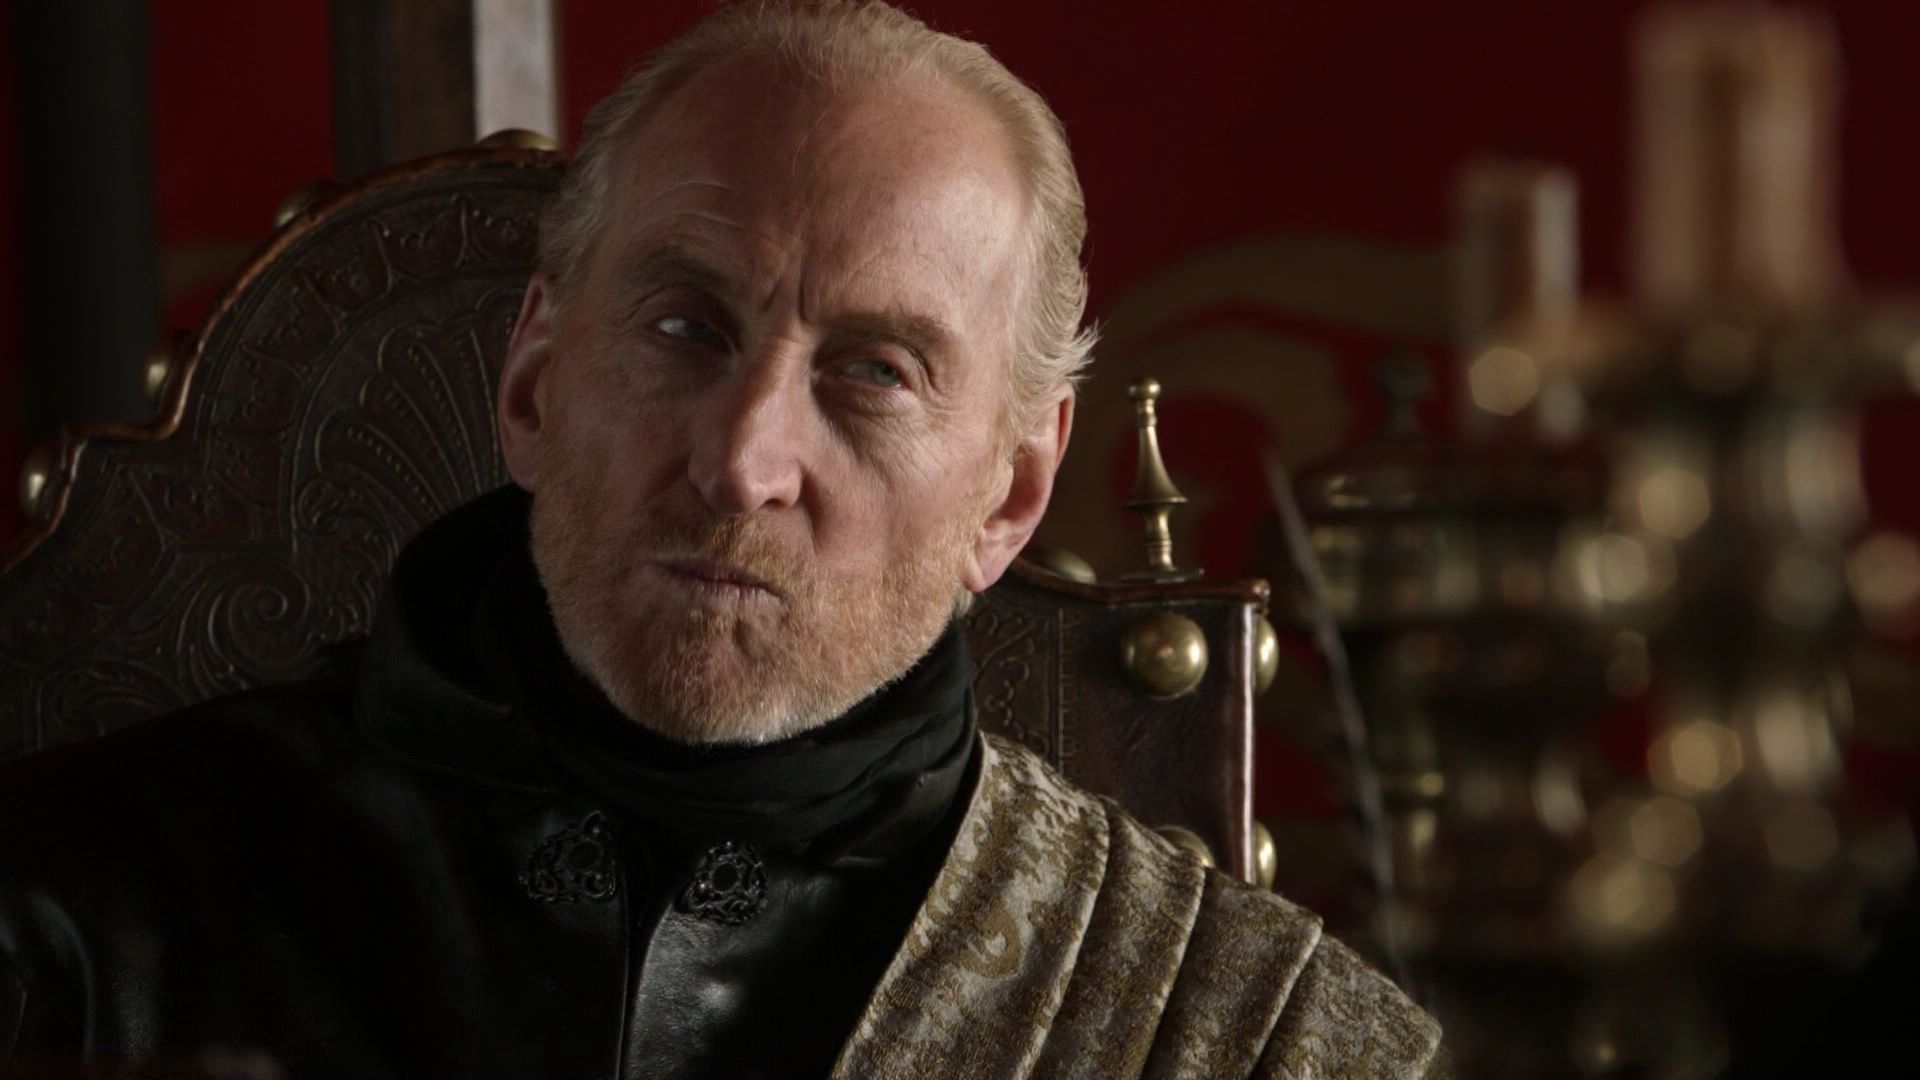 Game of Thrones Desktop Background – Tywin Lannister